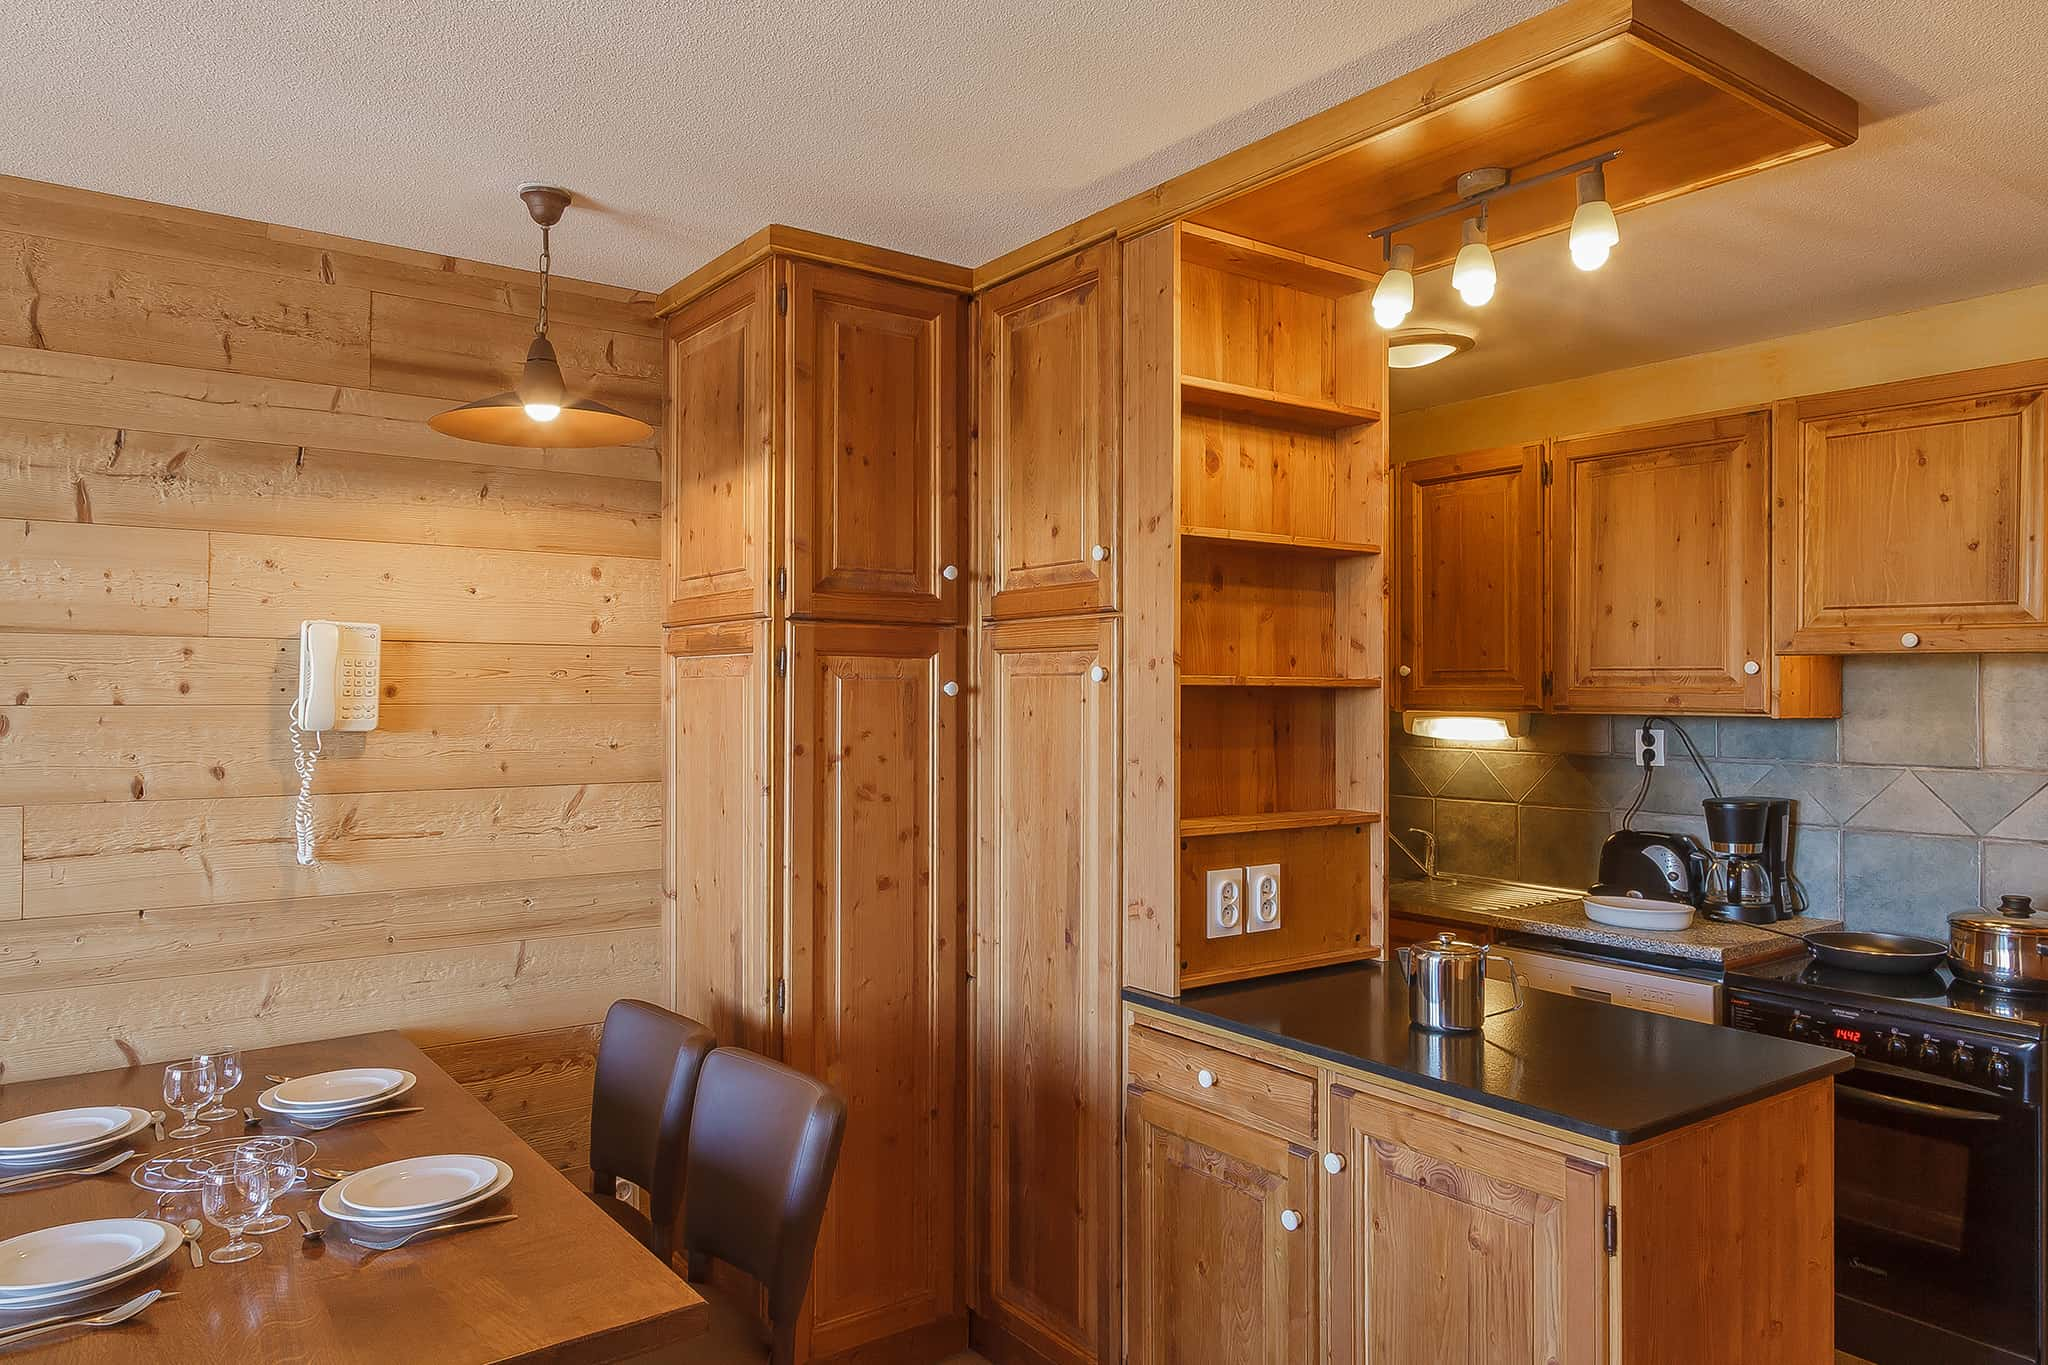 1-BBP-Types-Appartement-2-4pers-cuisine